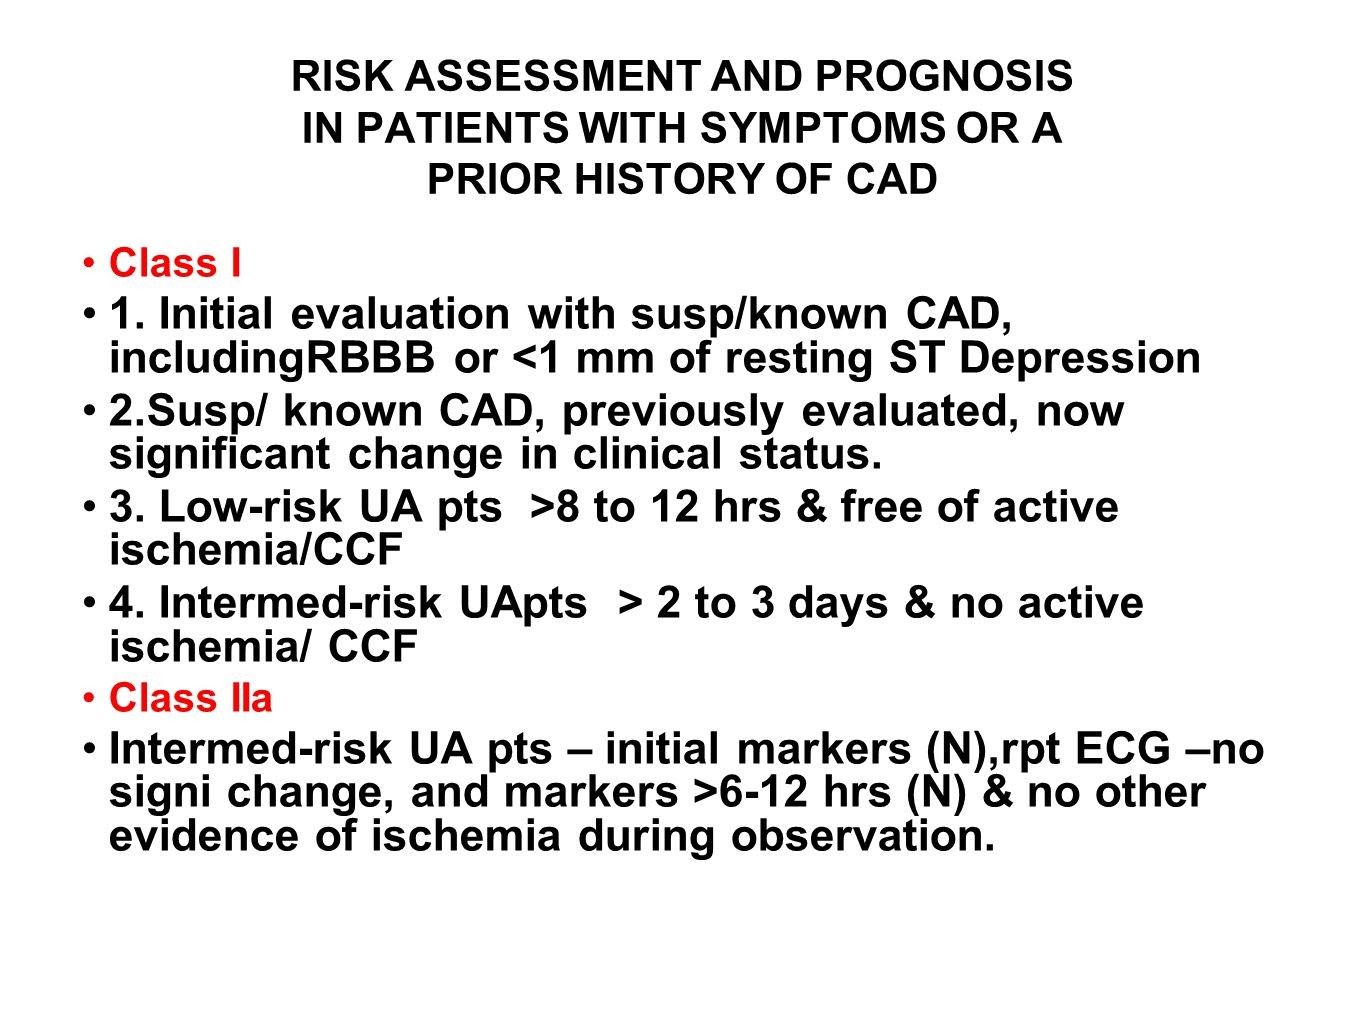 3. Low-risk UA pts >8 to 12 hrs & free of active ischemia/CCF